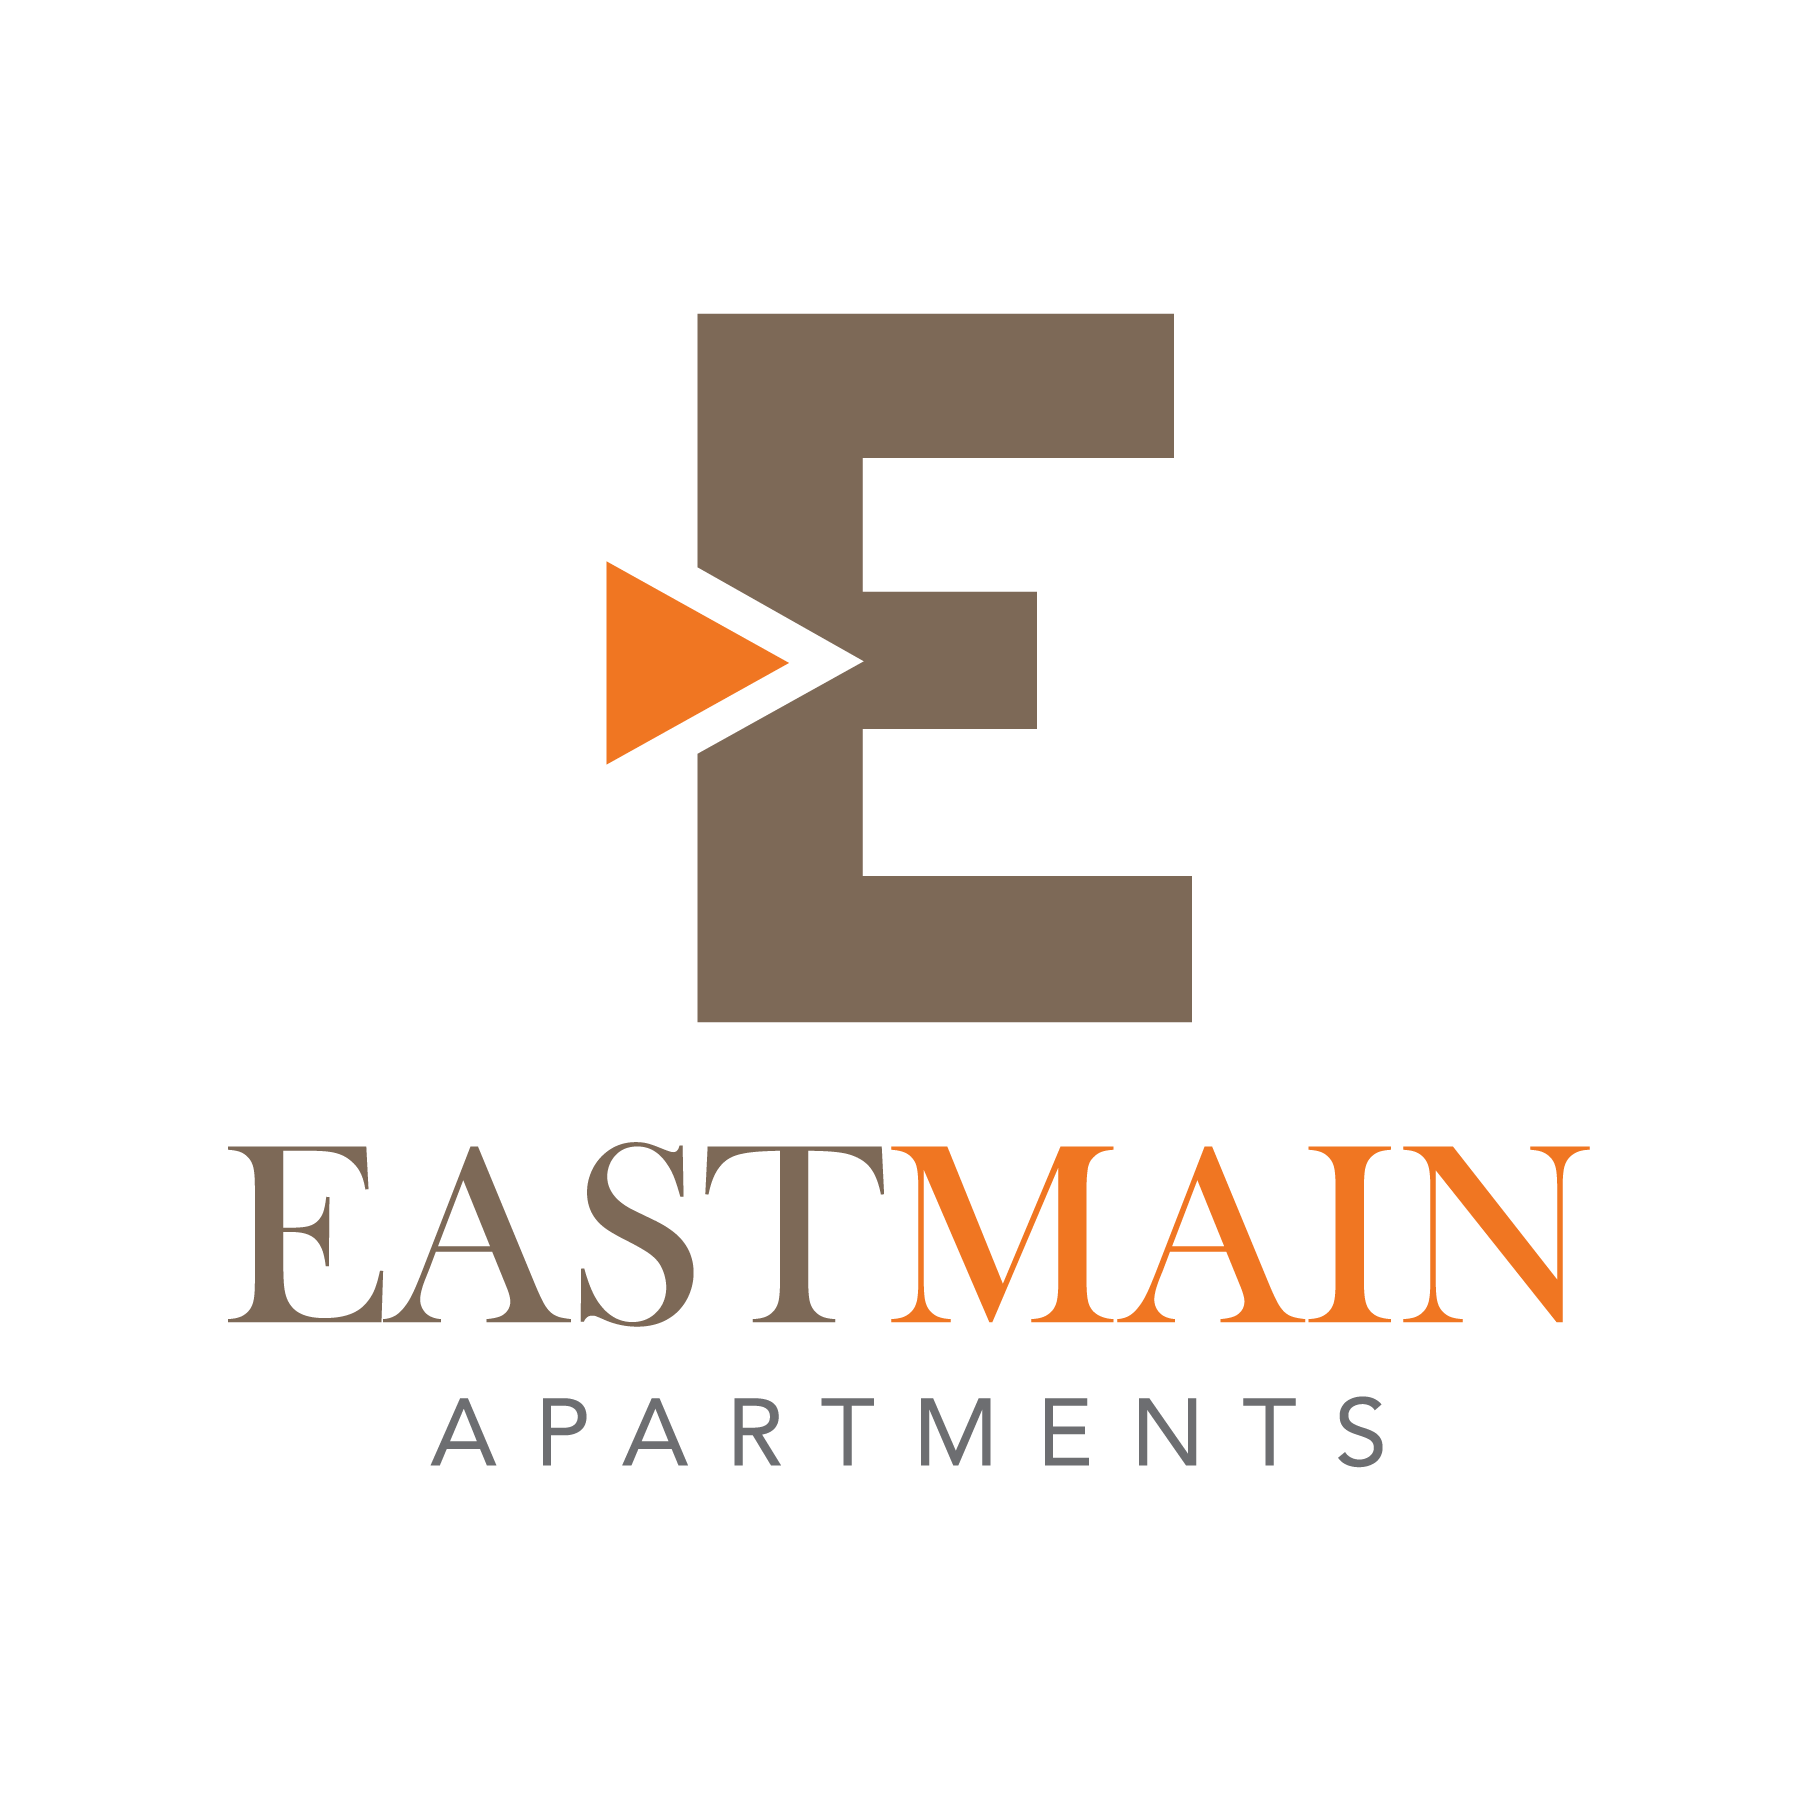 East Main Apartments image 23